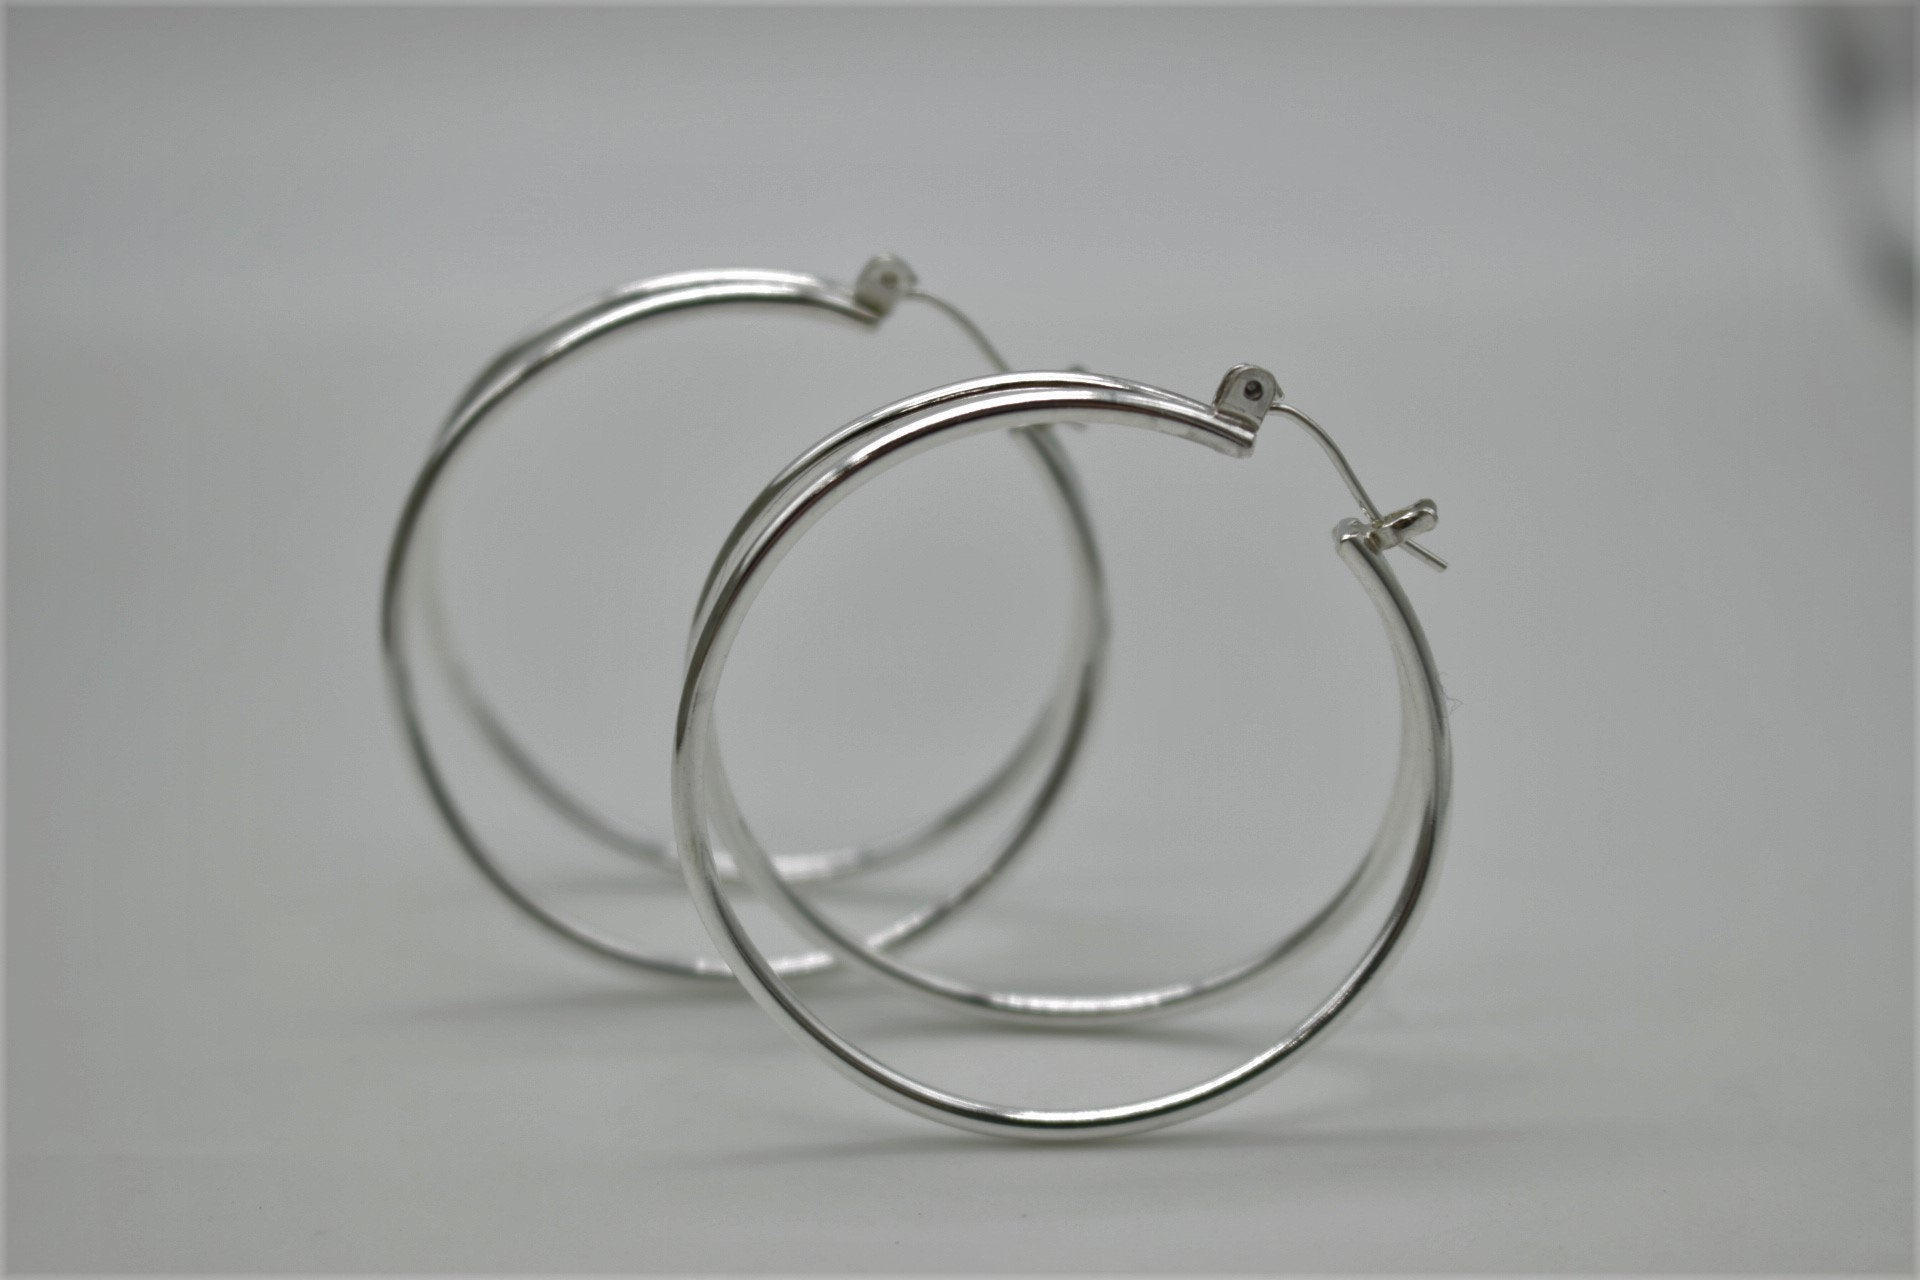 Large Double Hoop Earrings - Sterling Silver Hoops - Gift for her - Jewelry sale - Large hoops